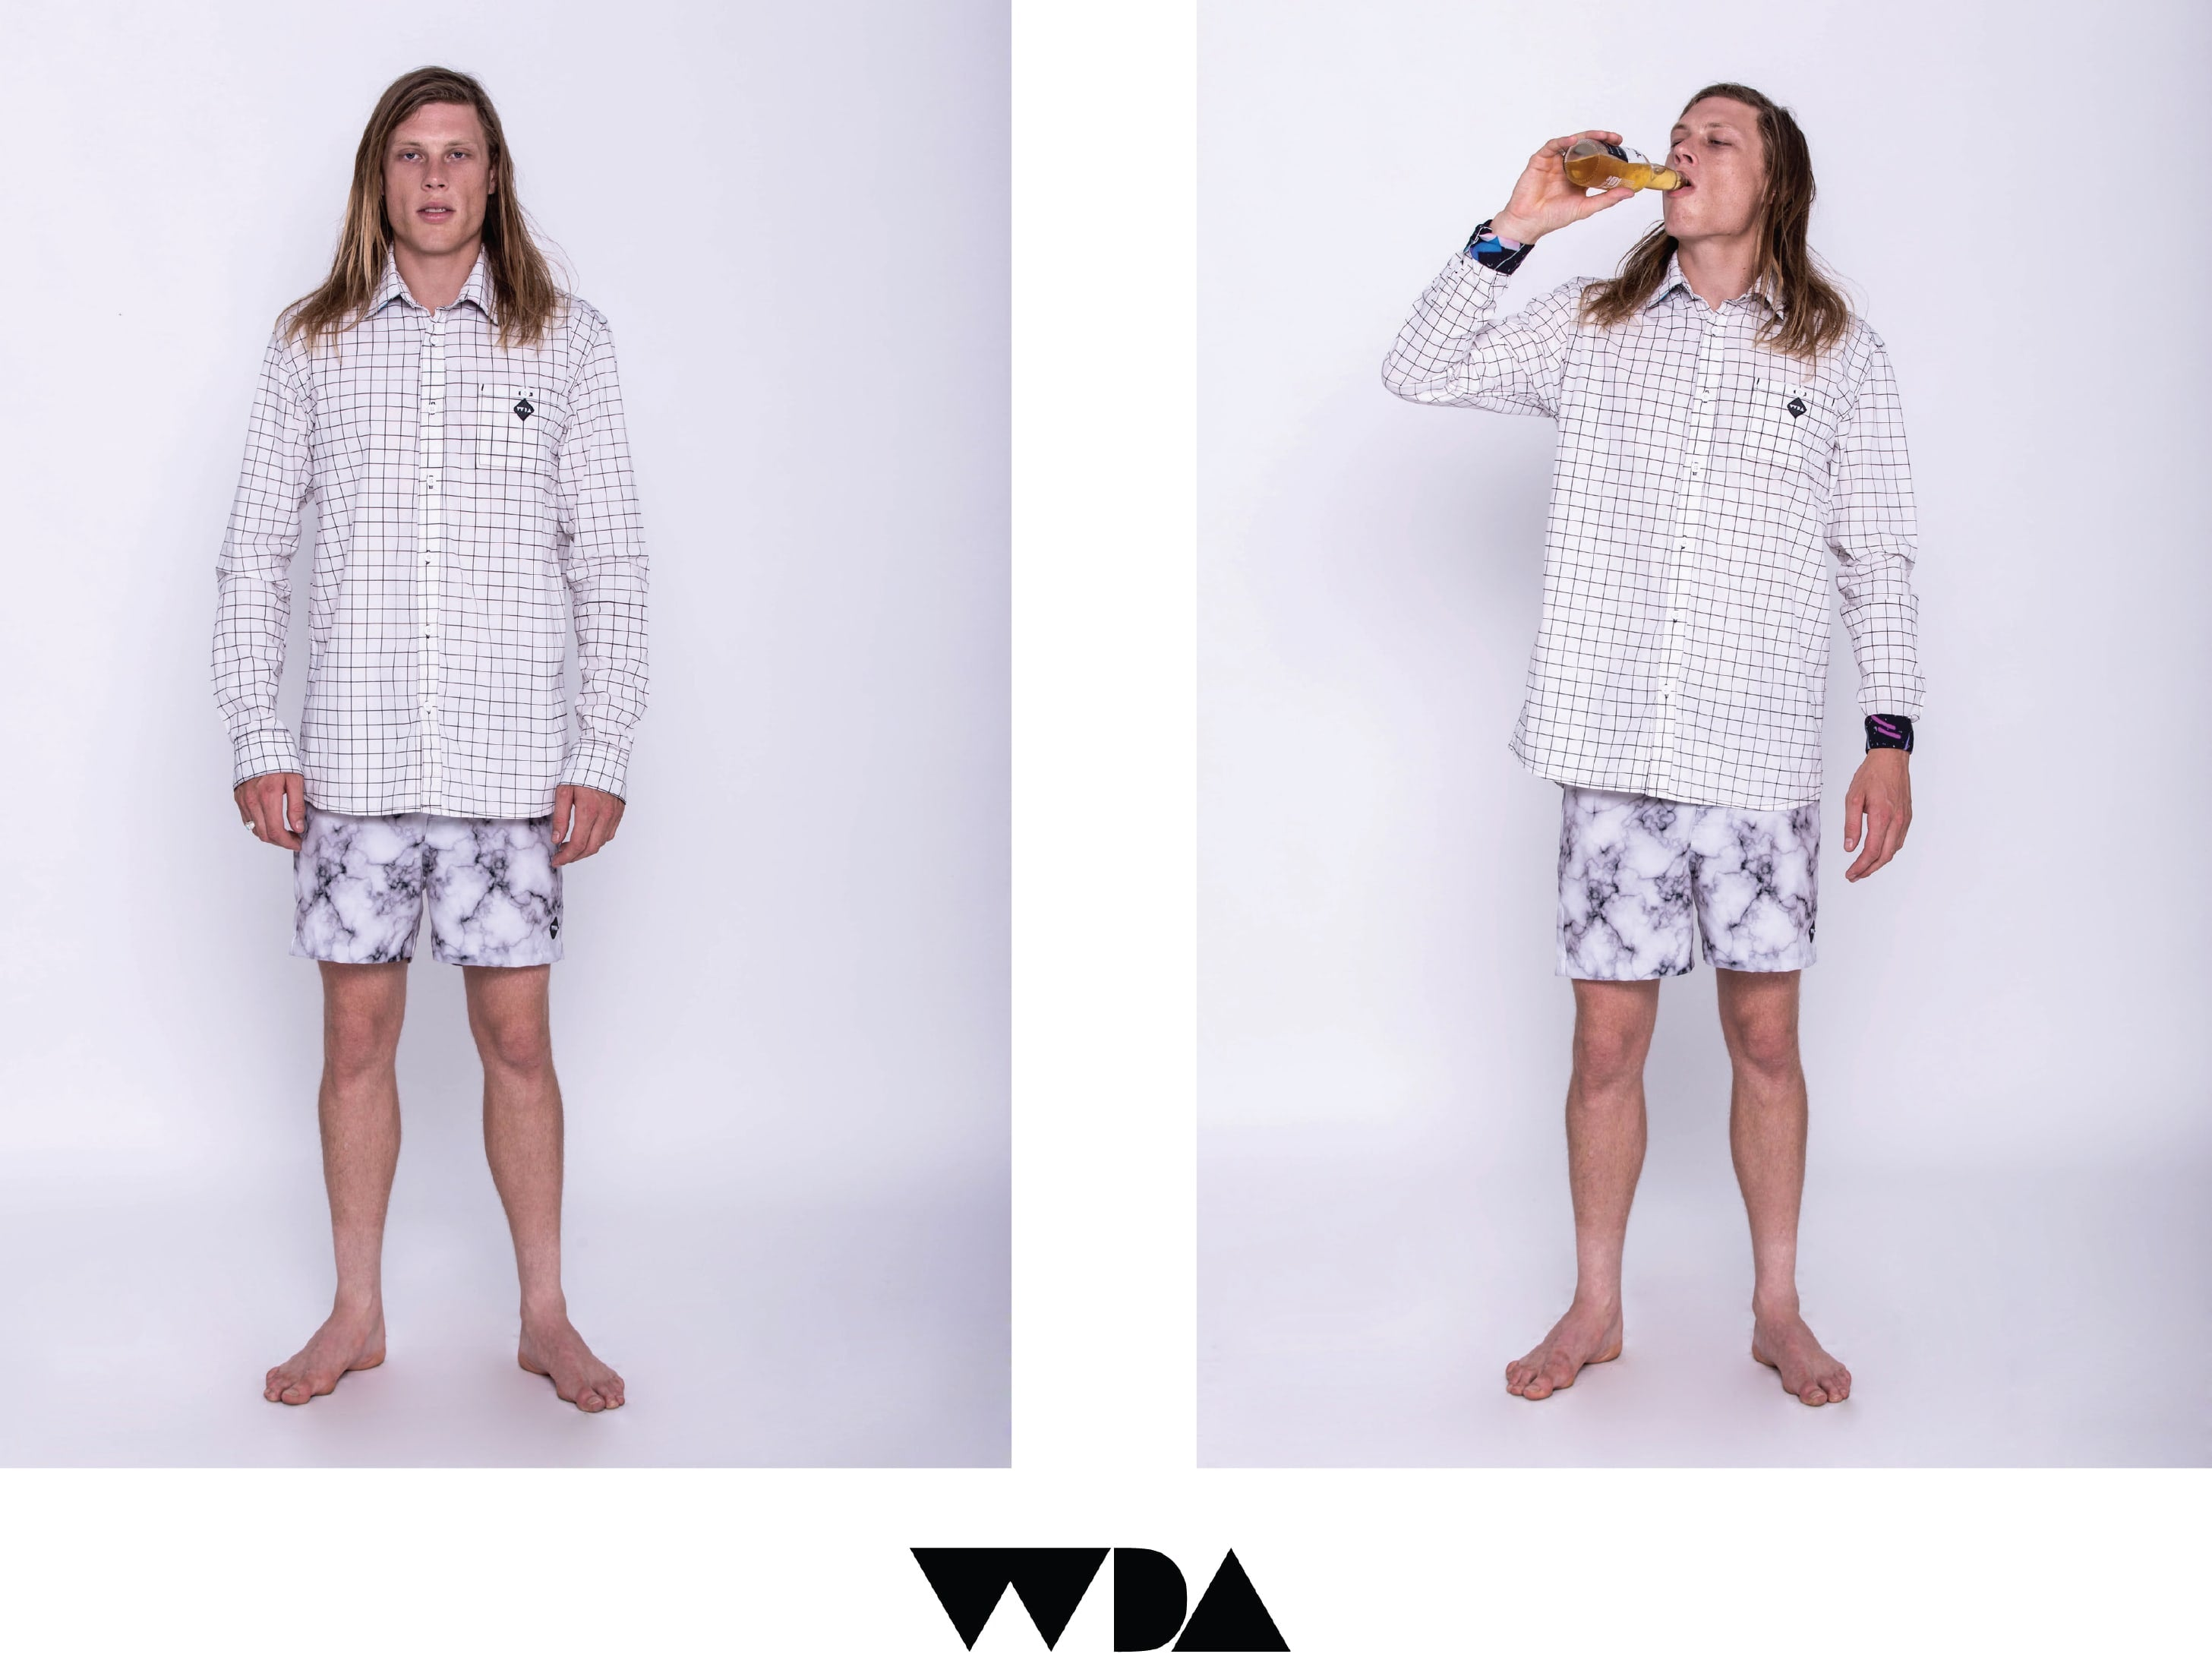 WDA, WE DREAM ALONE, CLOTHING, APPAREL, MENS, PARALLEL, SHIRT, BUTTON UP, WHITE, COLLAR, CUFF, 80S PRINT, BEER, MARBLE SHORT, BOARDSHORT